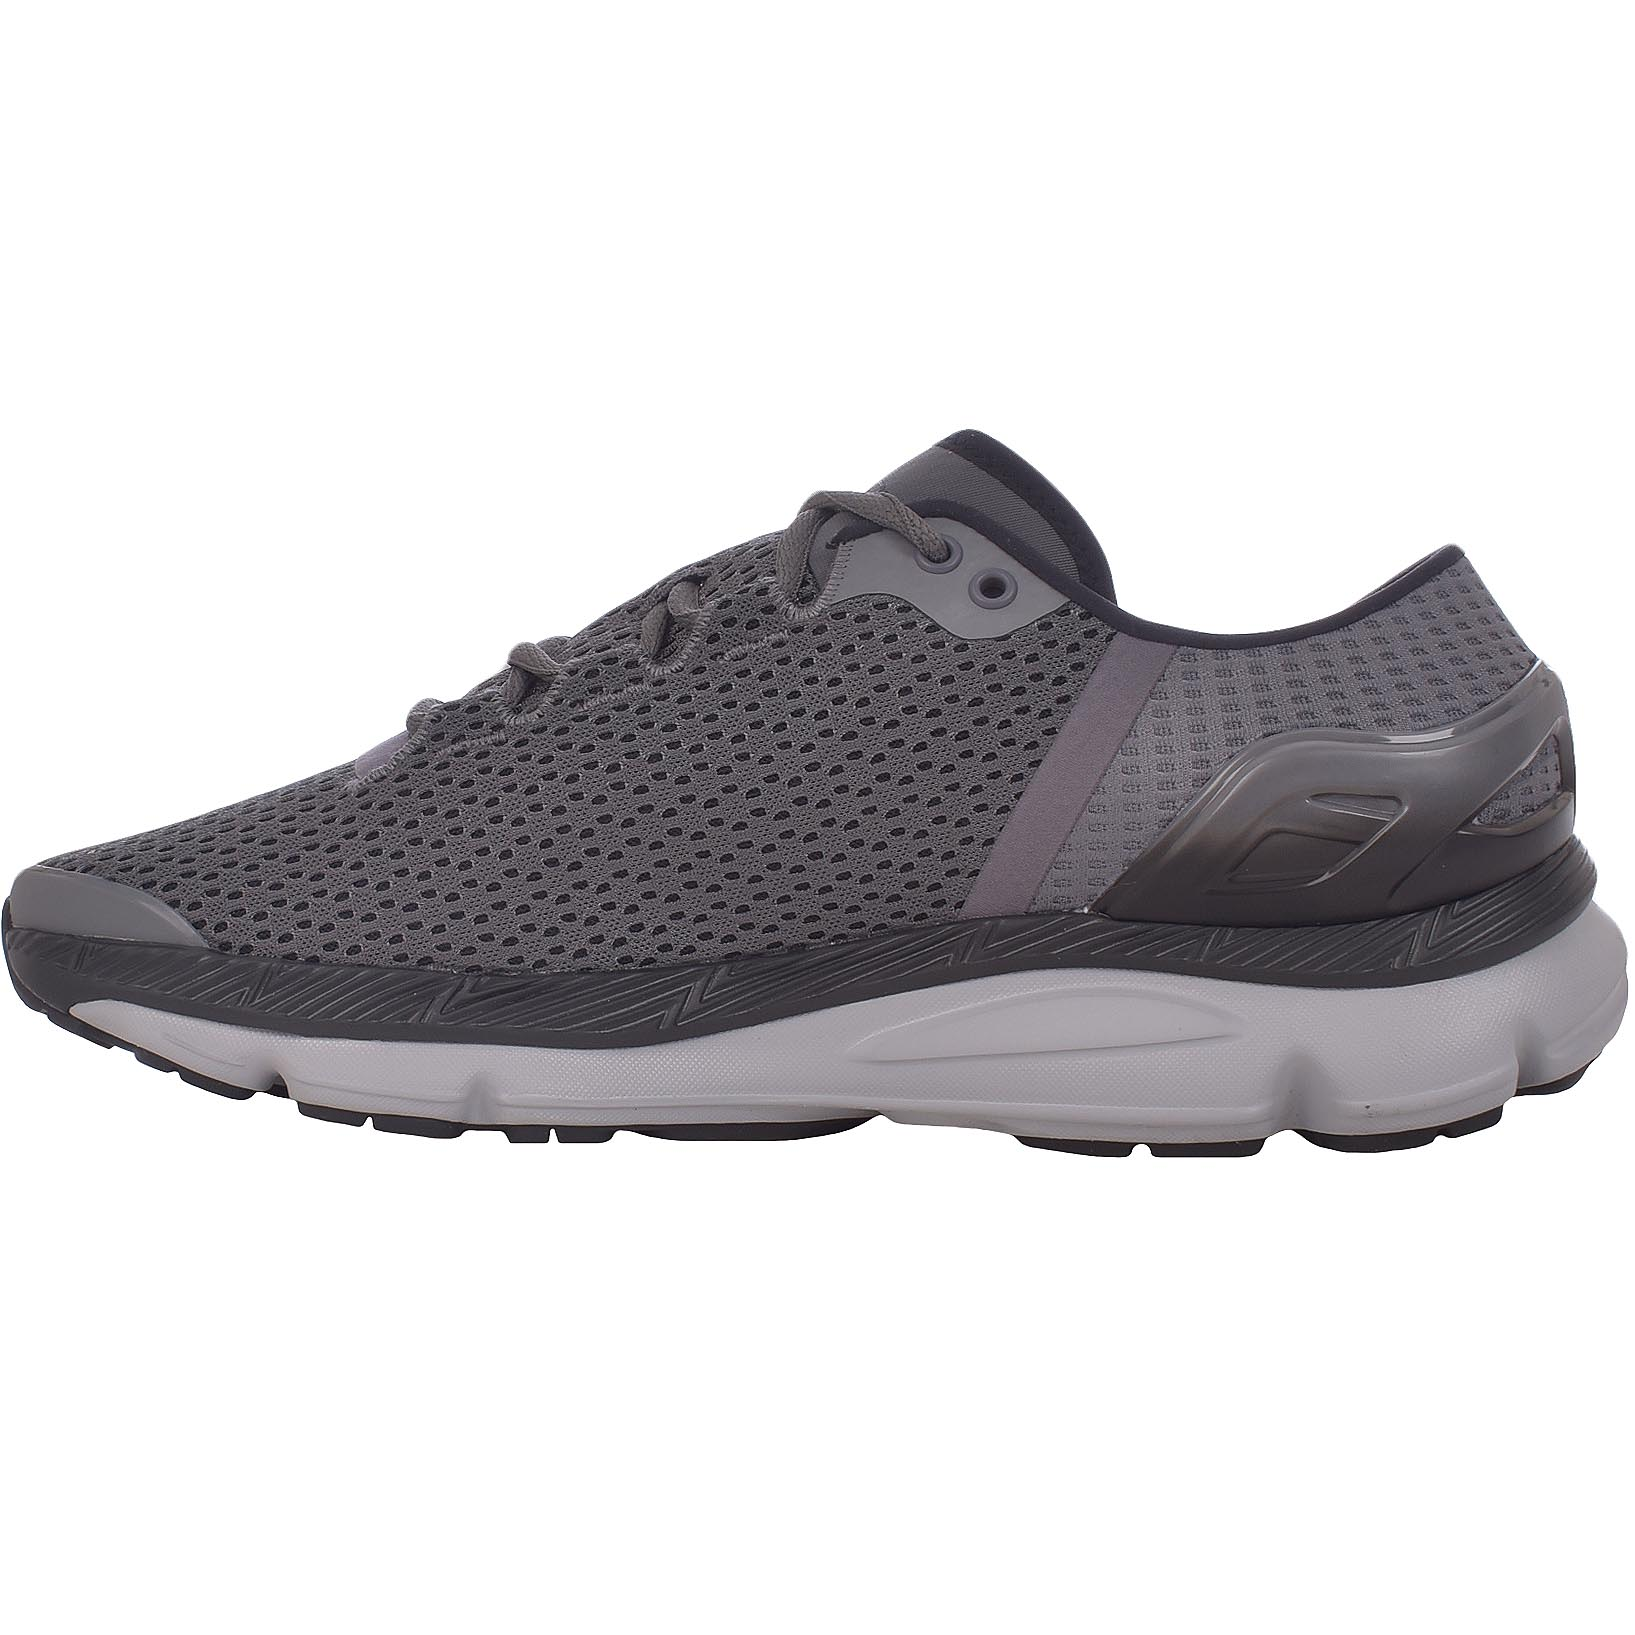 Under Armour Mens SpeedForm Intake 2 Running Trainers Sneakers Shoes